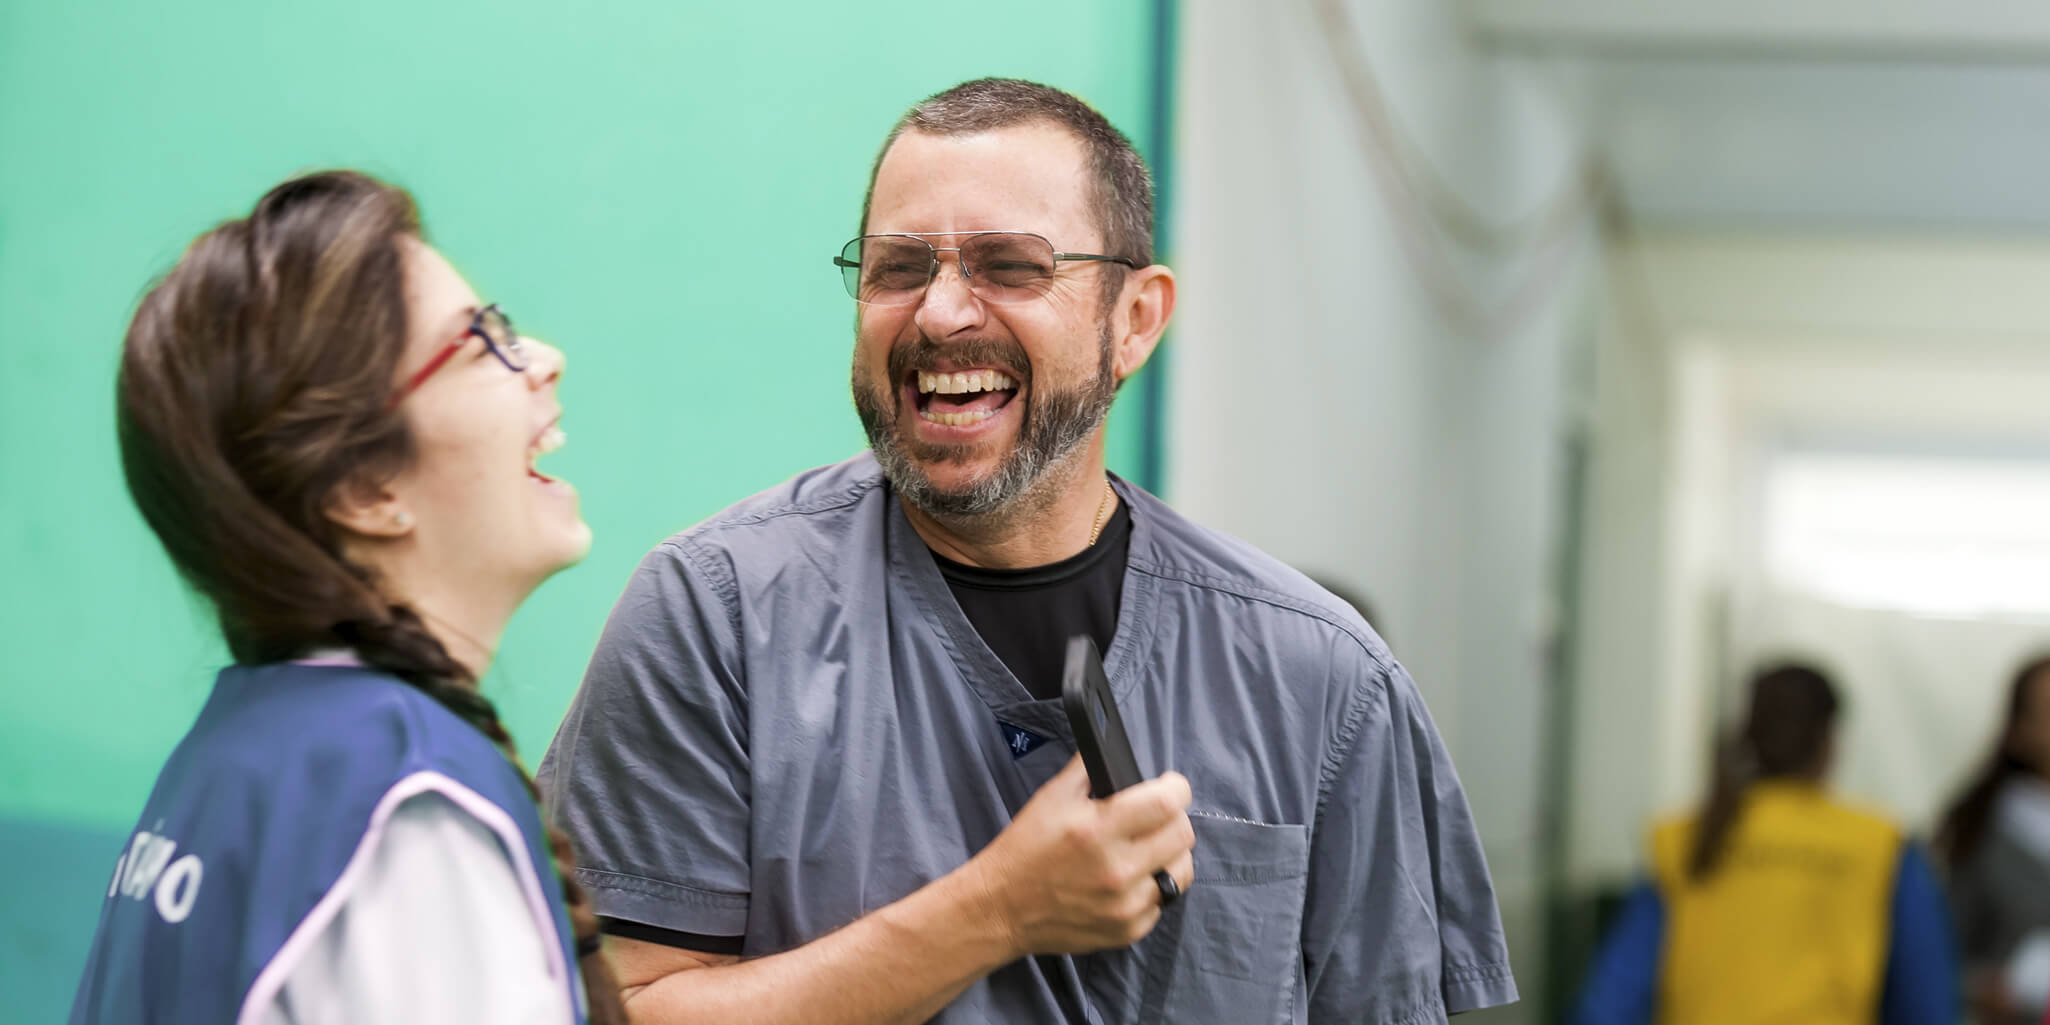 Dr. Dunham and a volunteer laughing